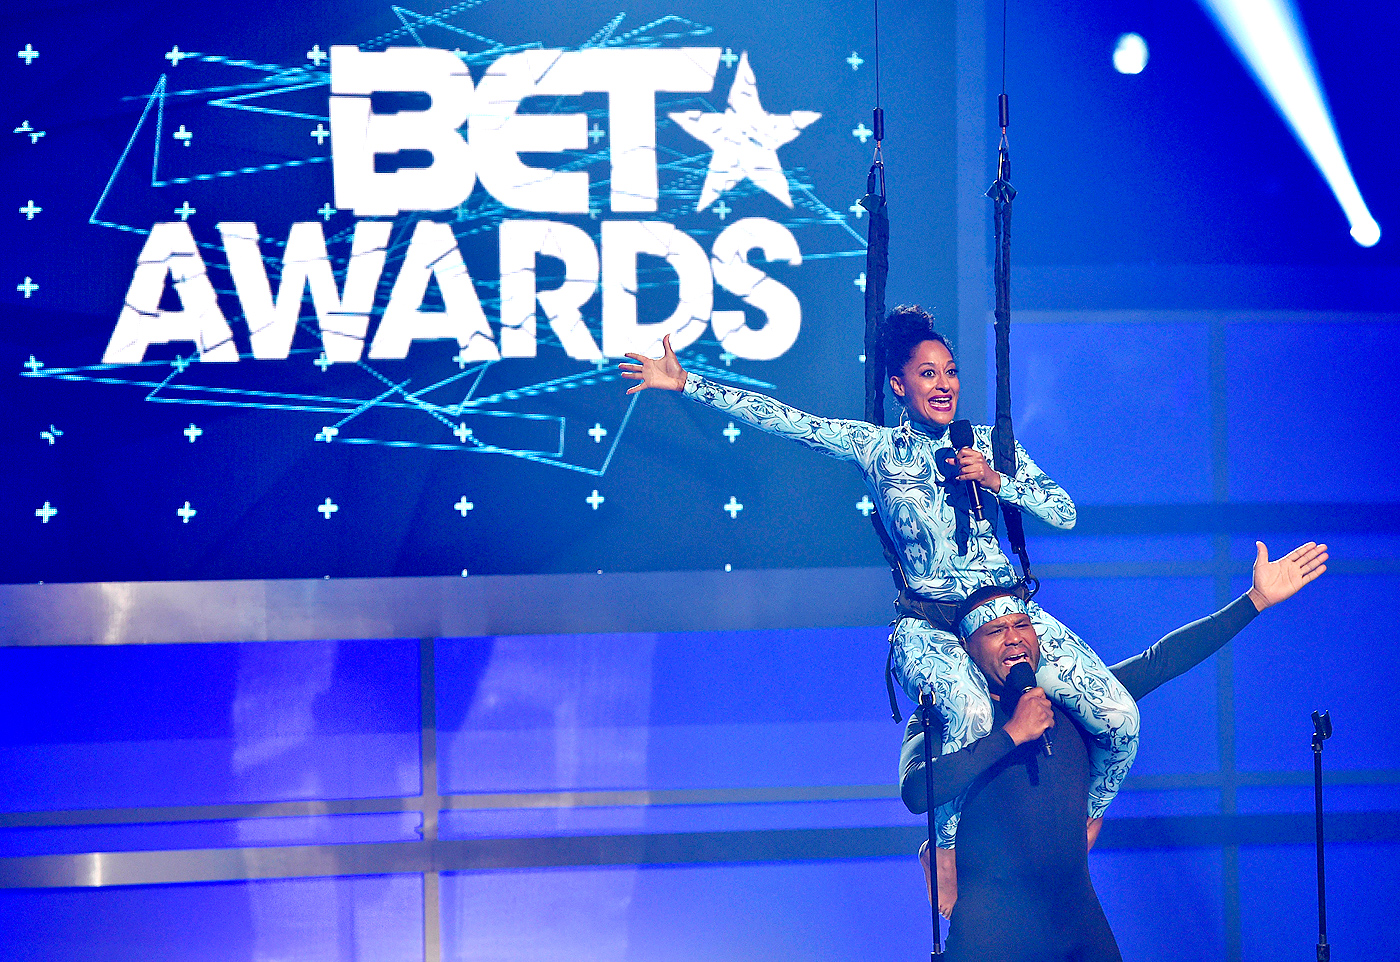 Highlights from the 2015 BET Awards